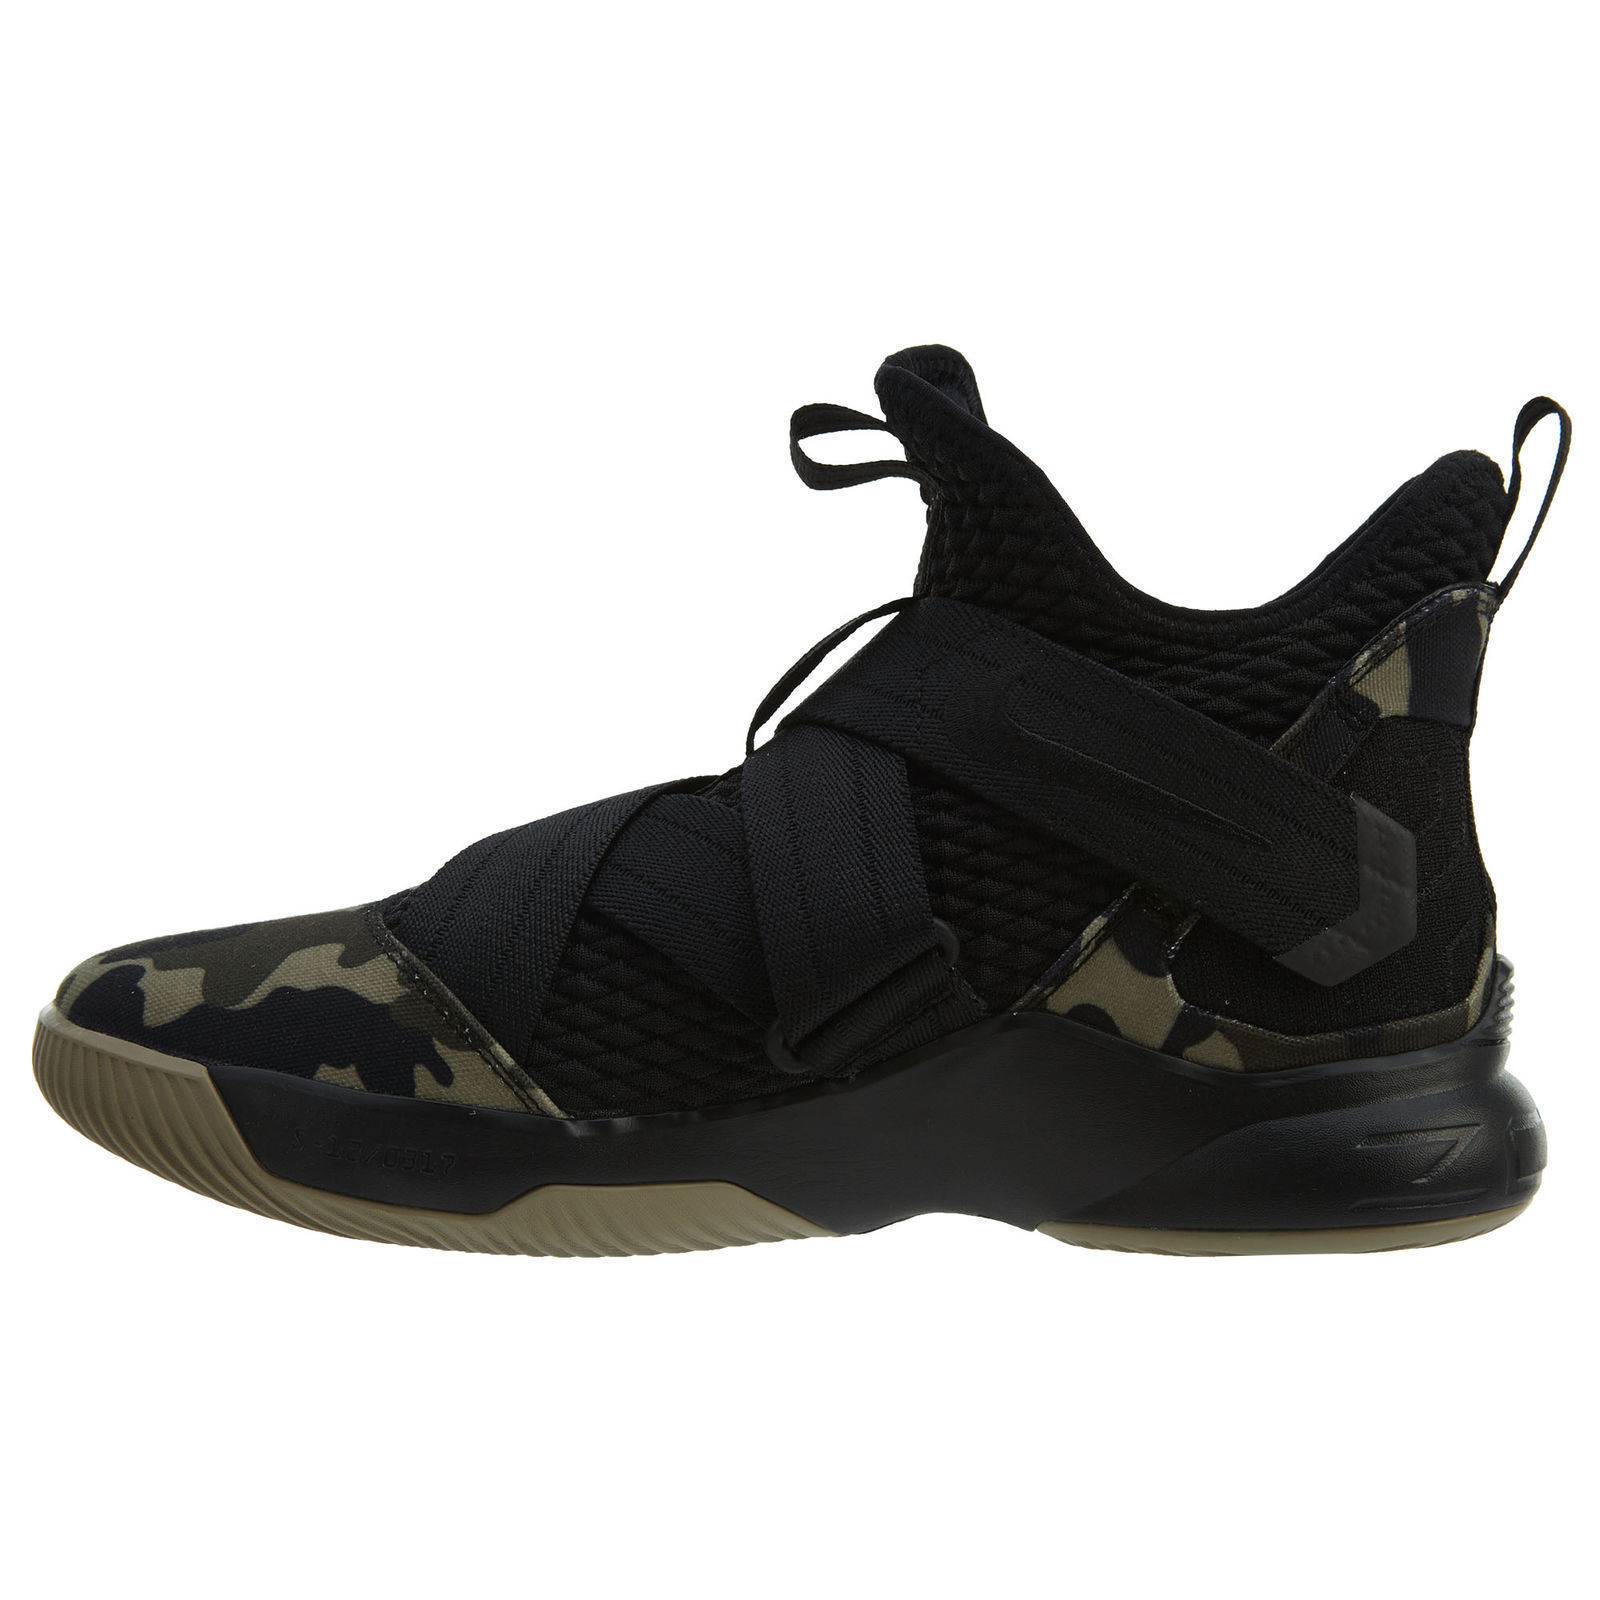 the latest dcc48 a2bca Nike Men s Lebron Soldier XII SFG Sneakers Size 7 to 13 us AO4054 001